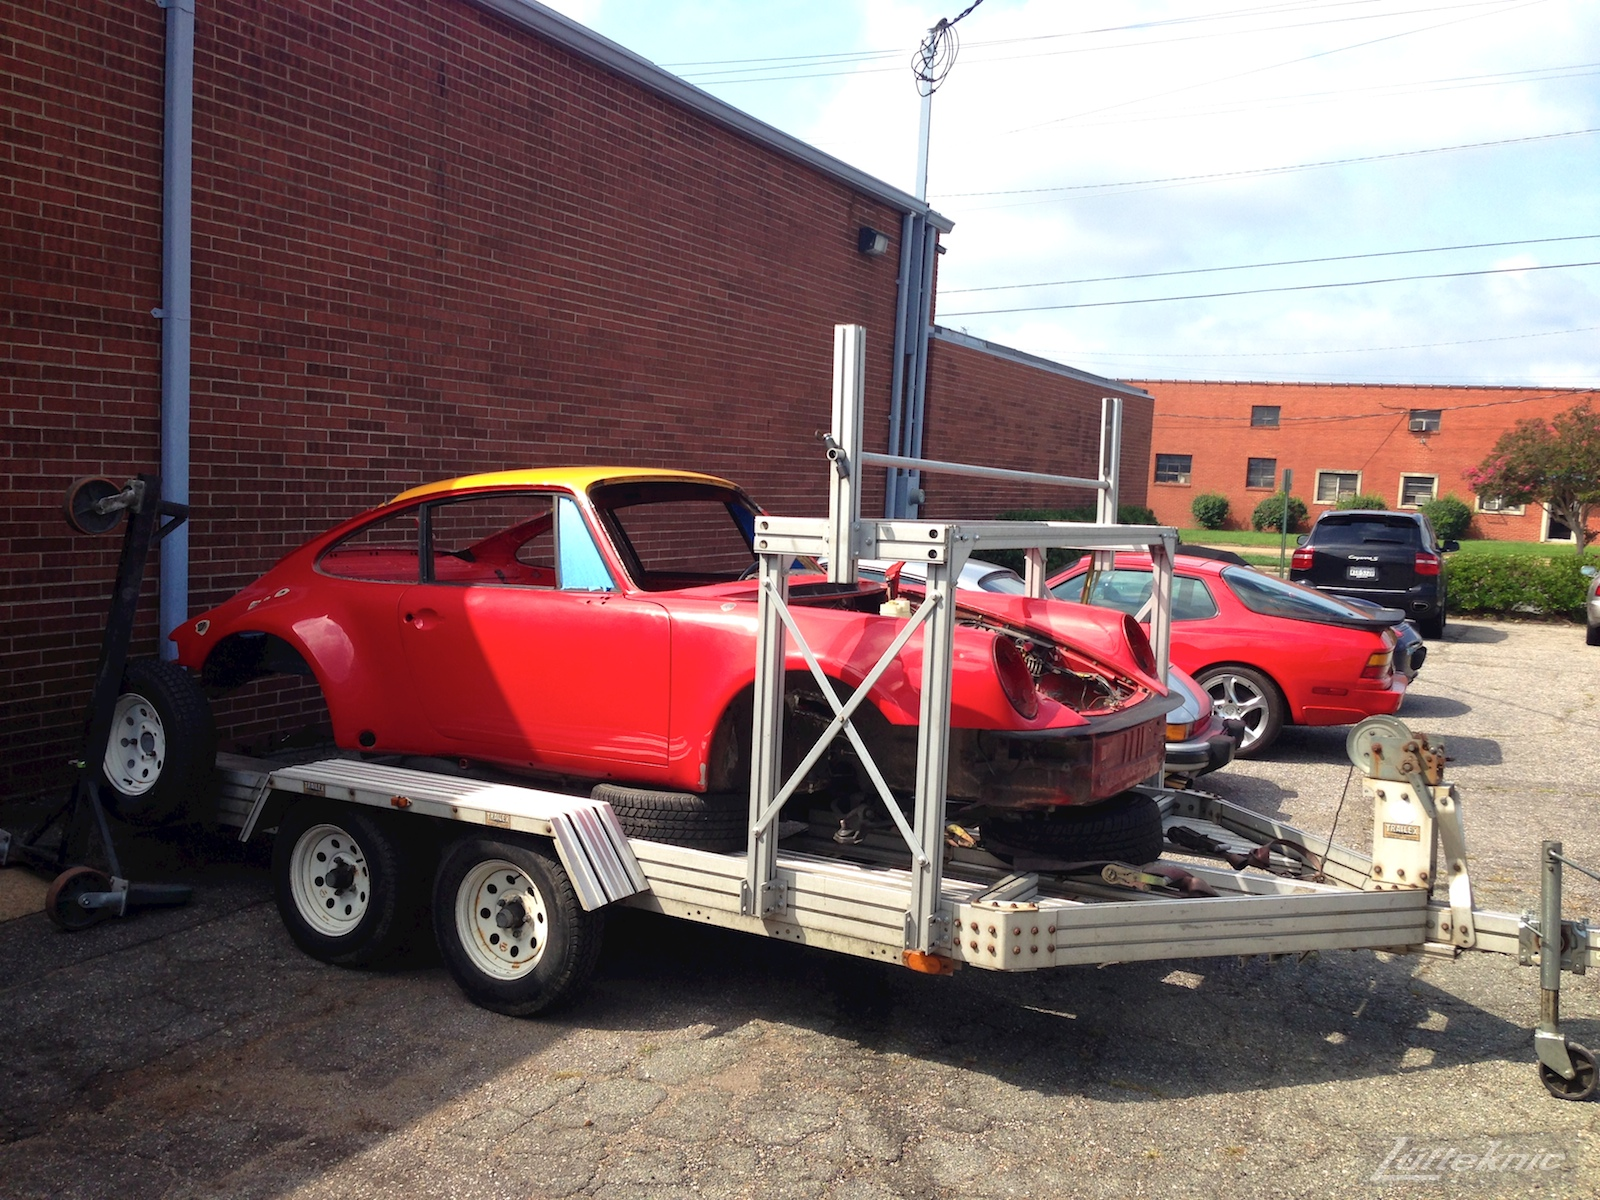 Lüfteknic #projectstuka Porsche 930 Turbo on a trailer